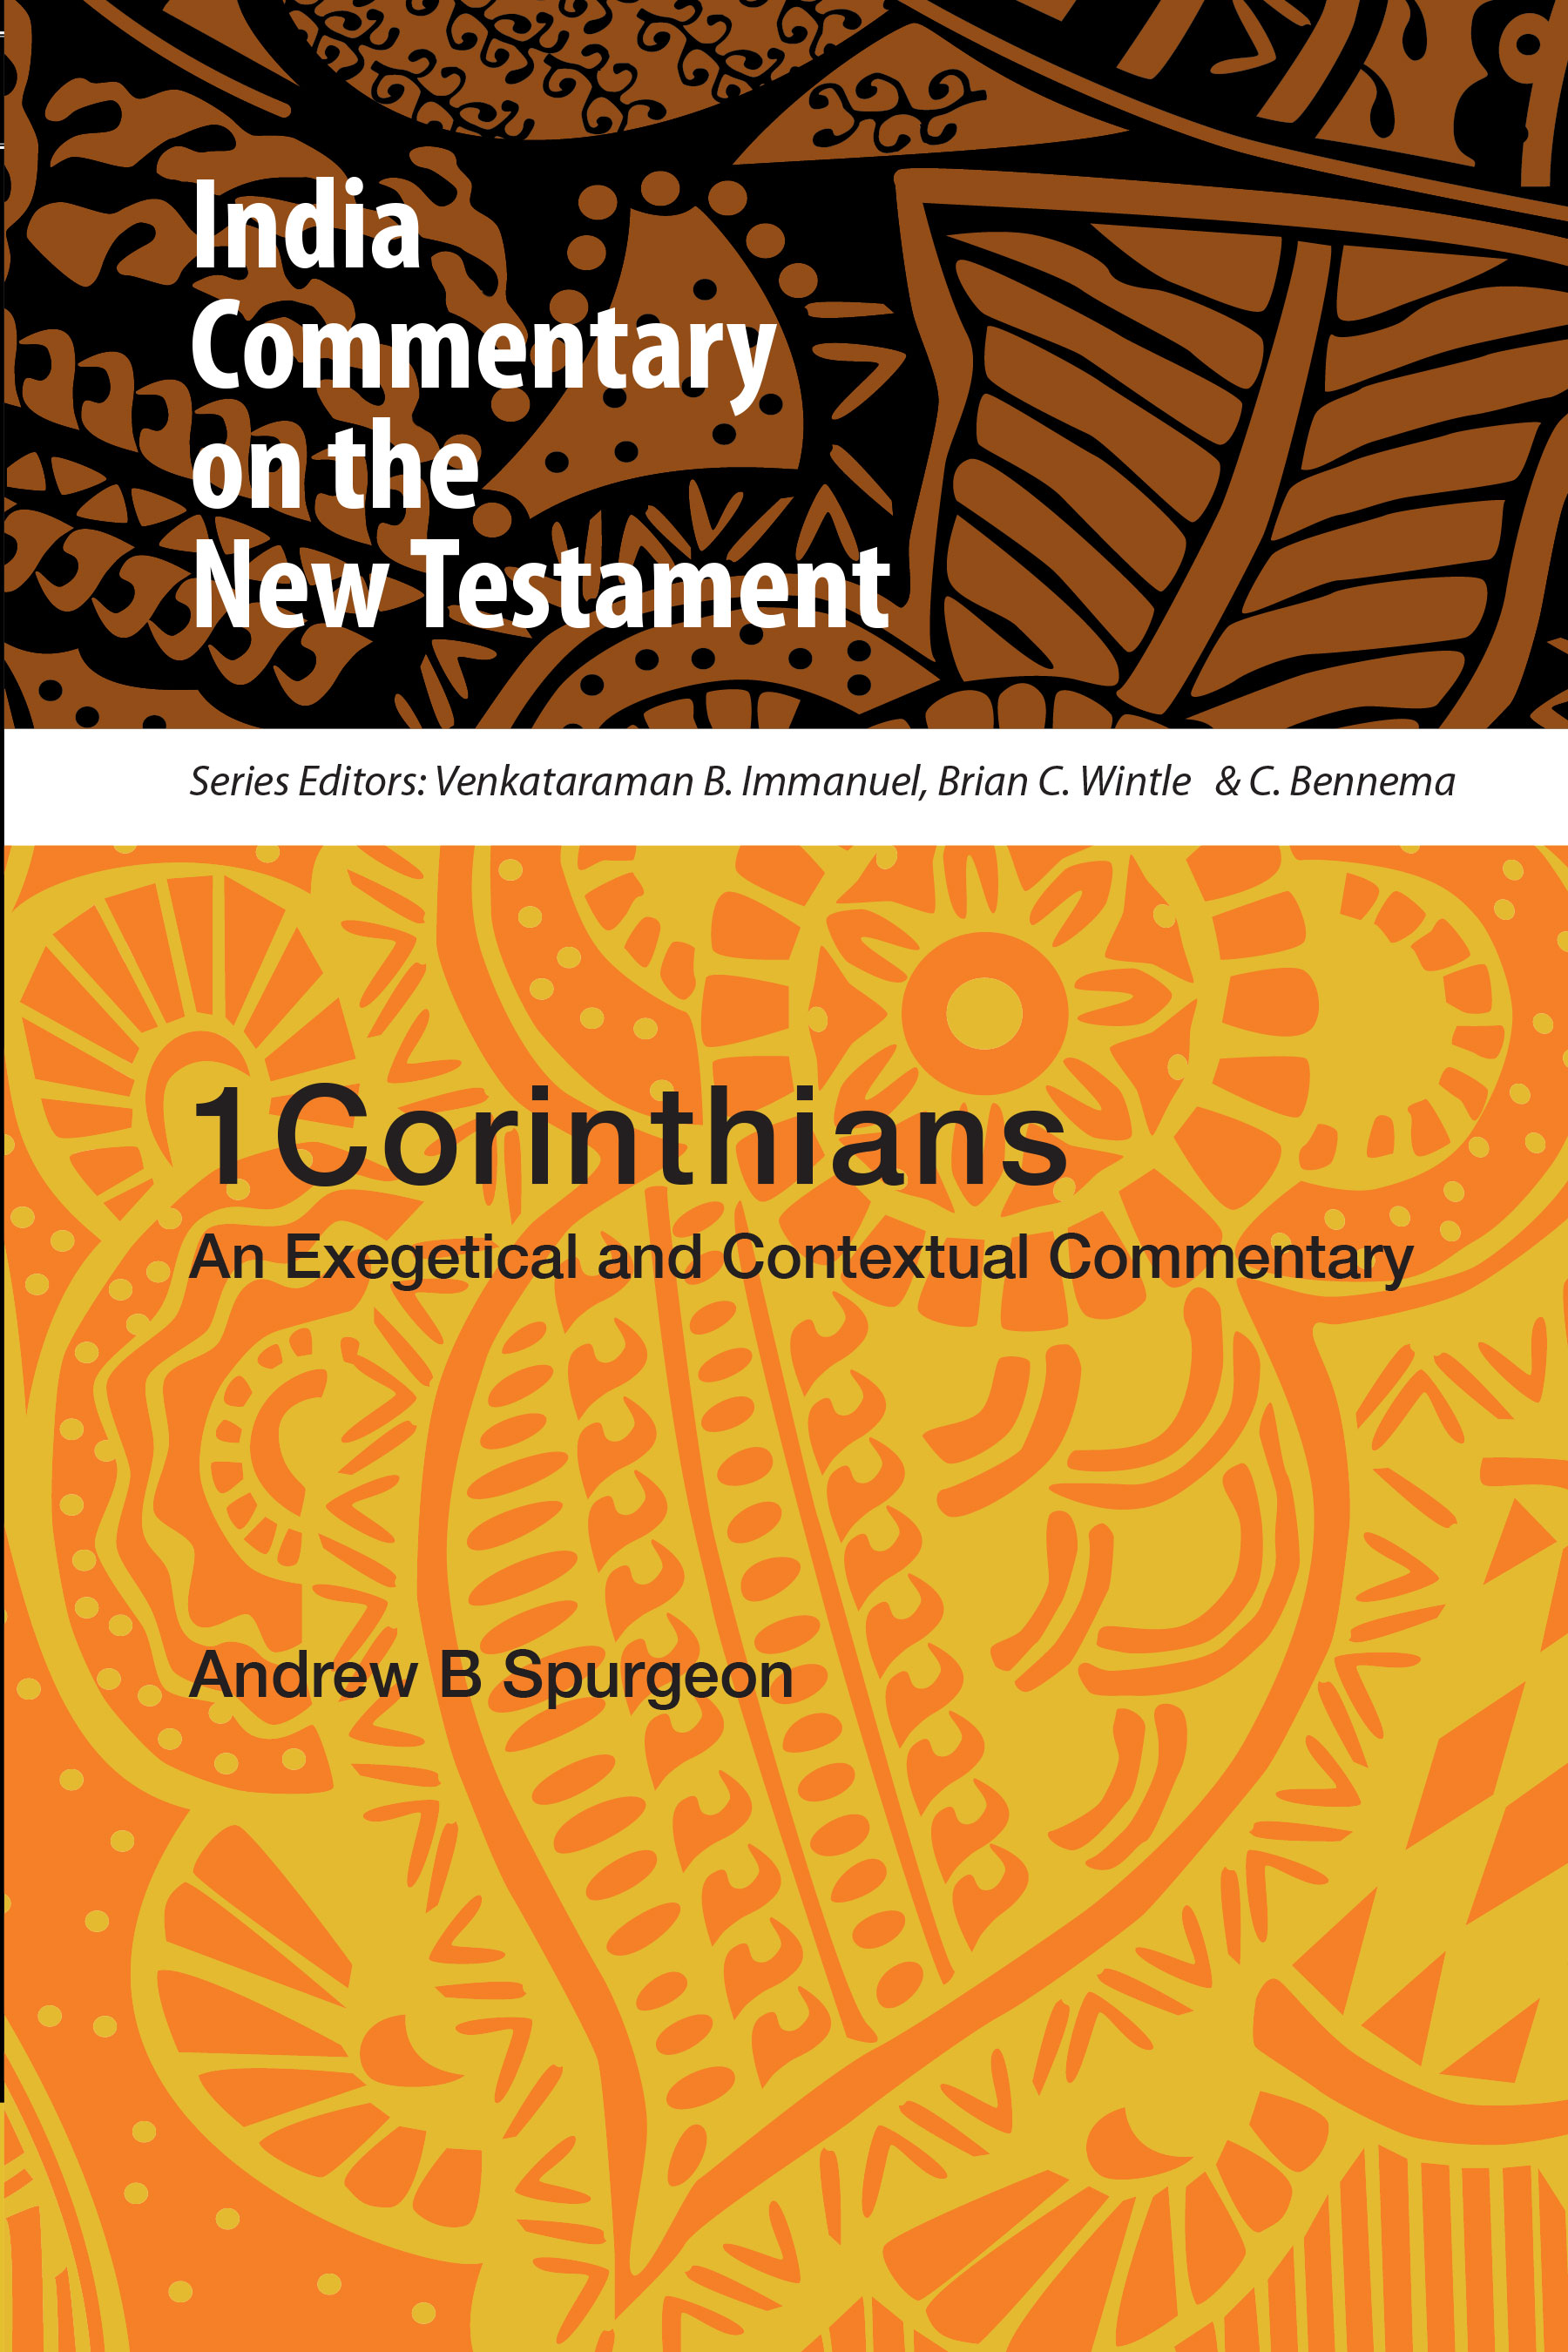 1 Corinthians: An Exegetical and Contextual Commentary